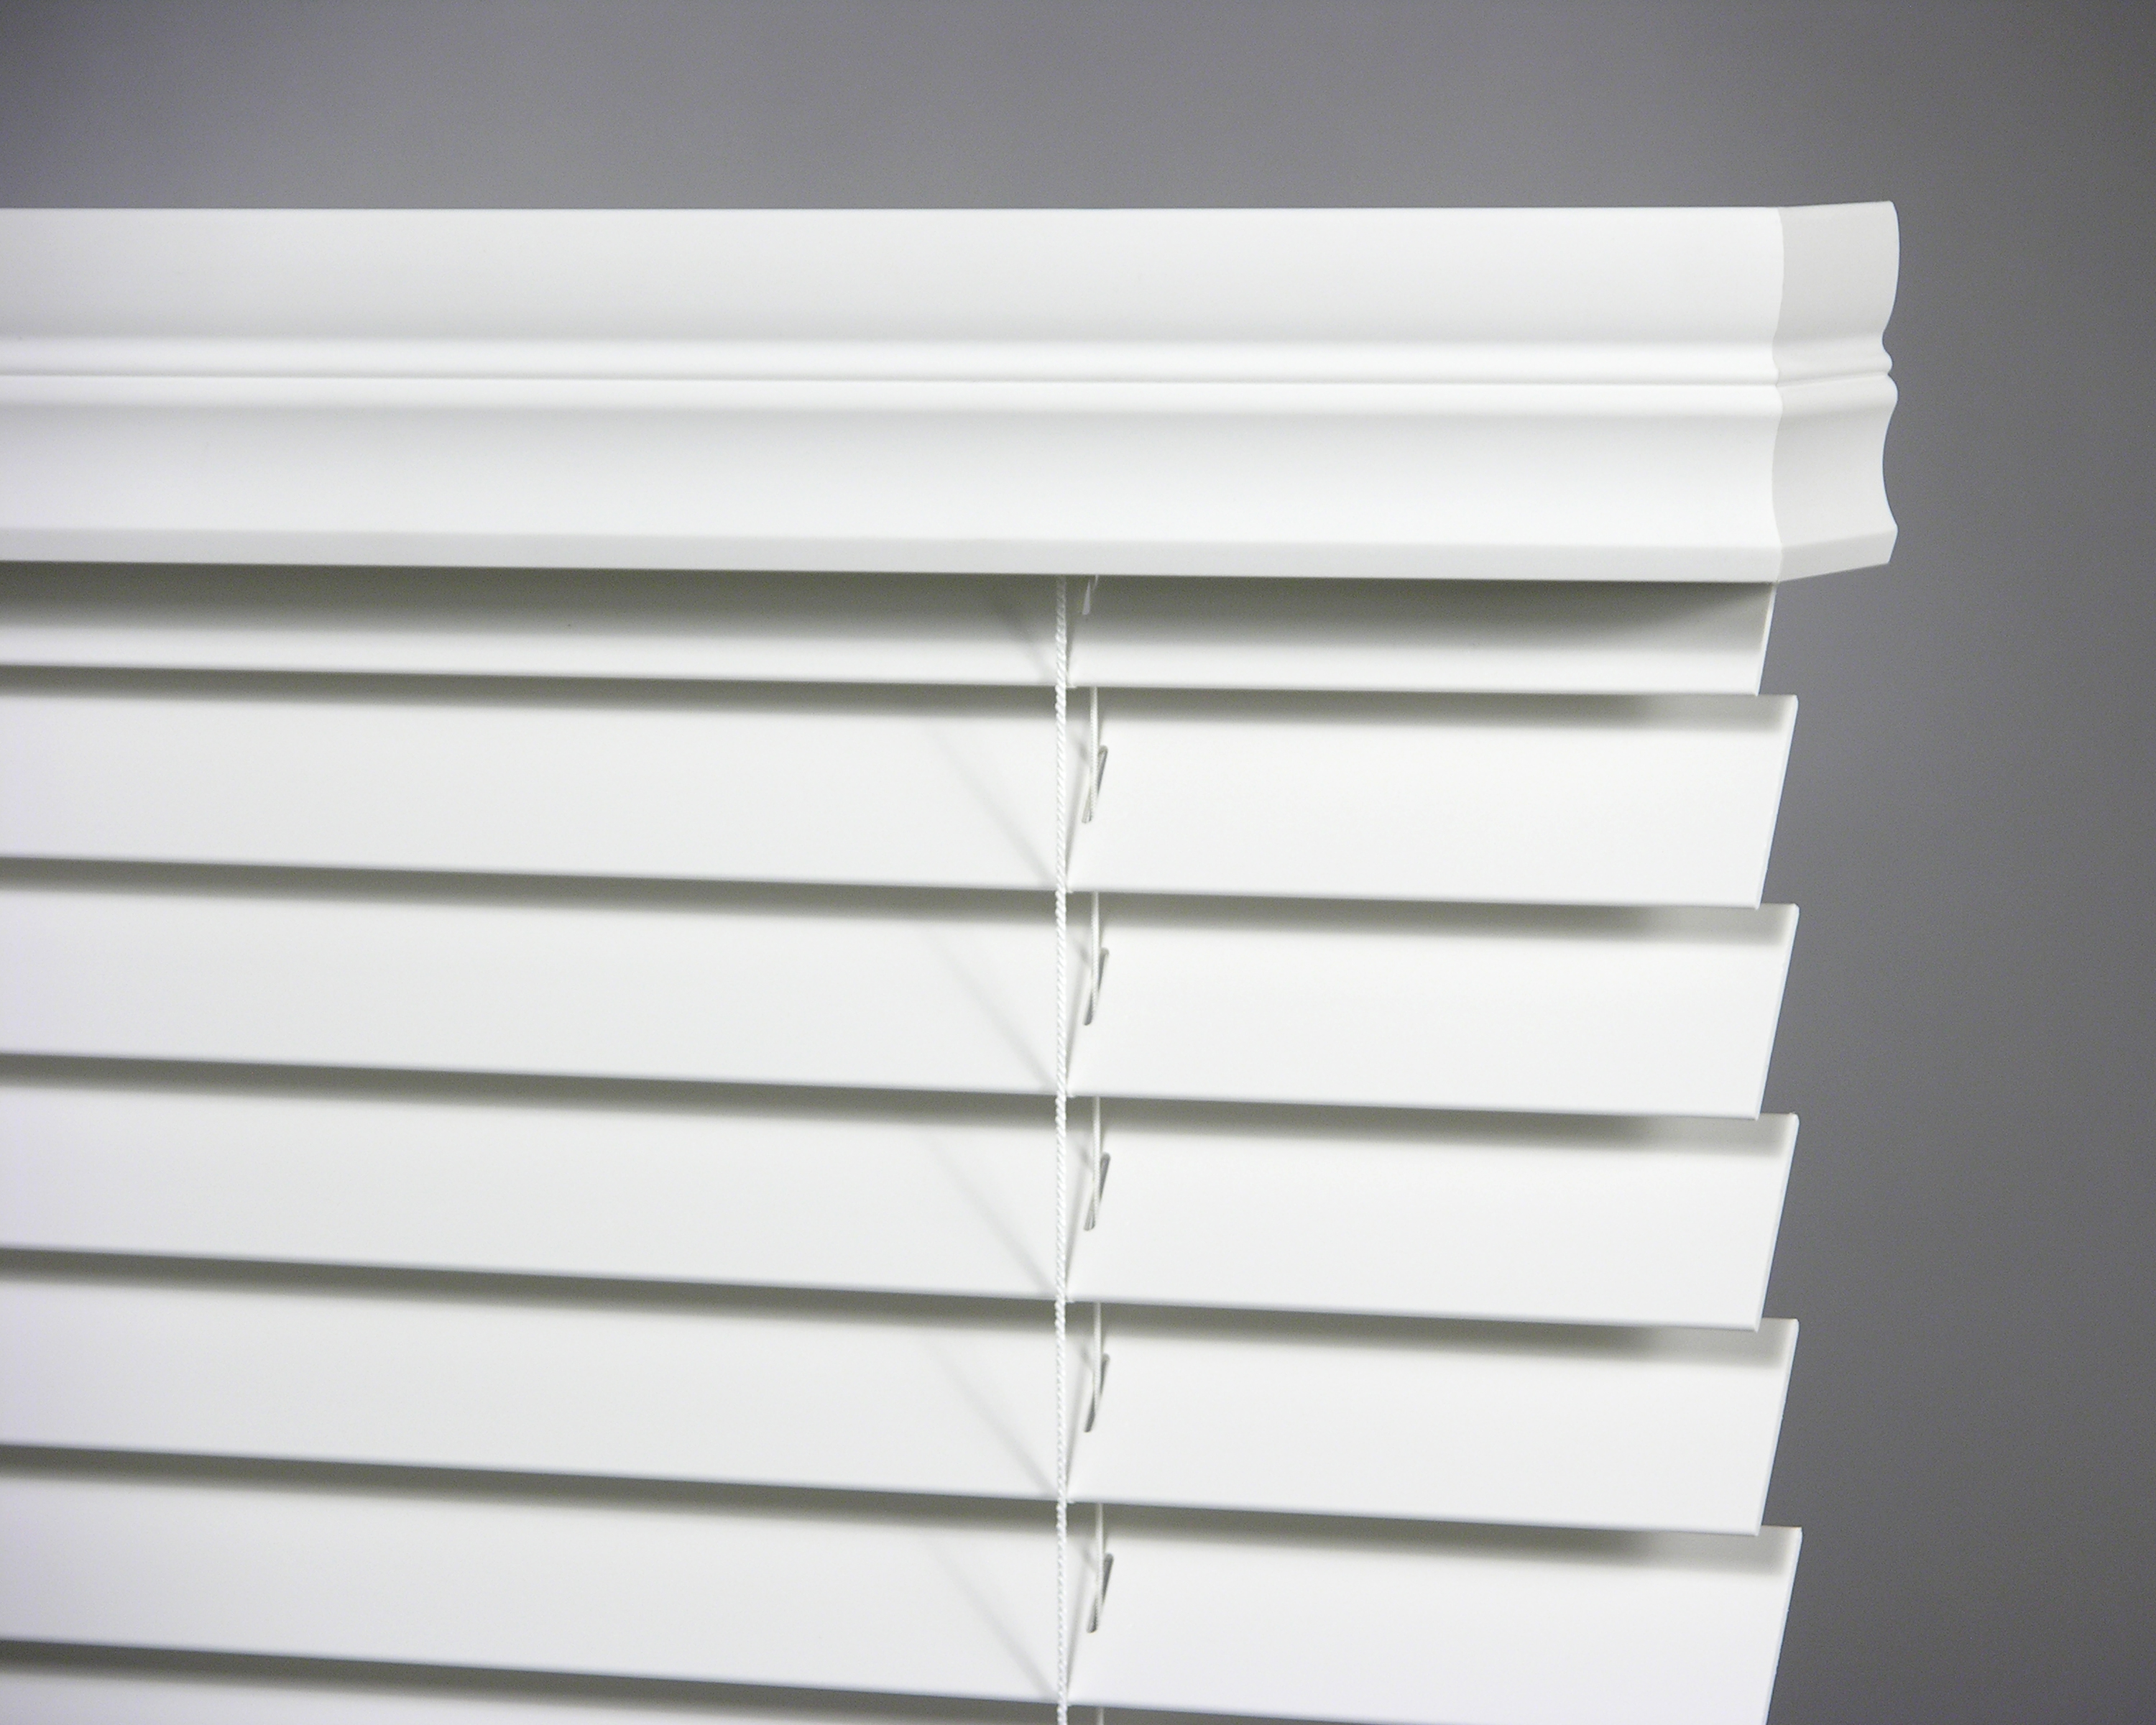 Real wood vs faux wood blinds - Faux Wood Blinds